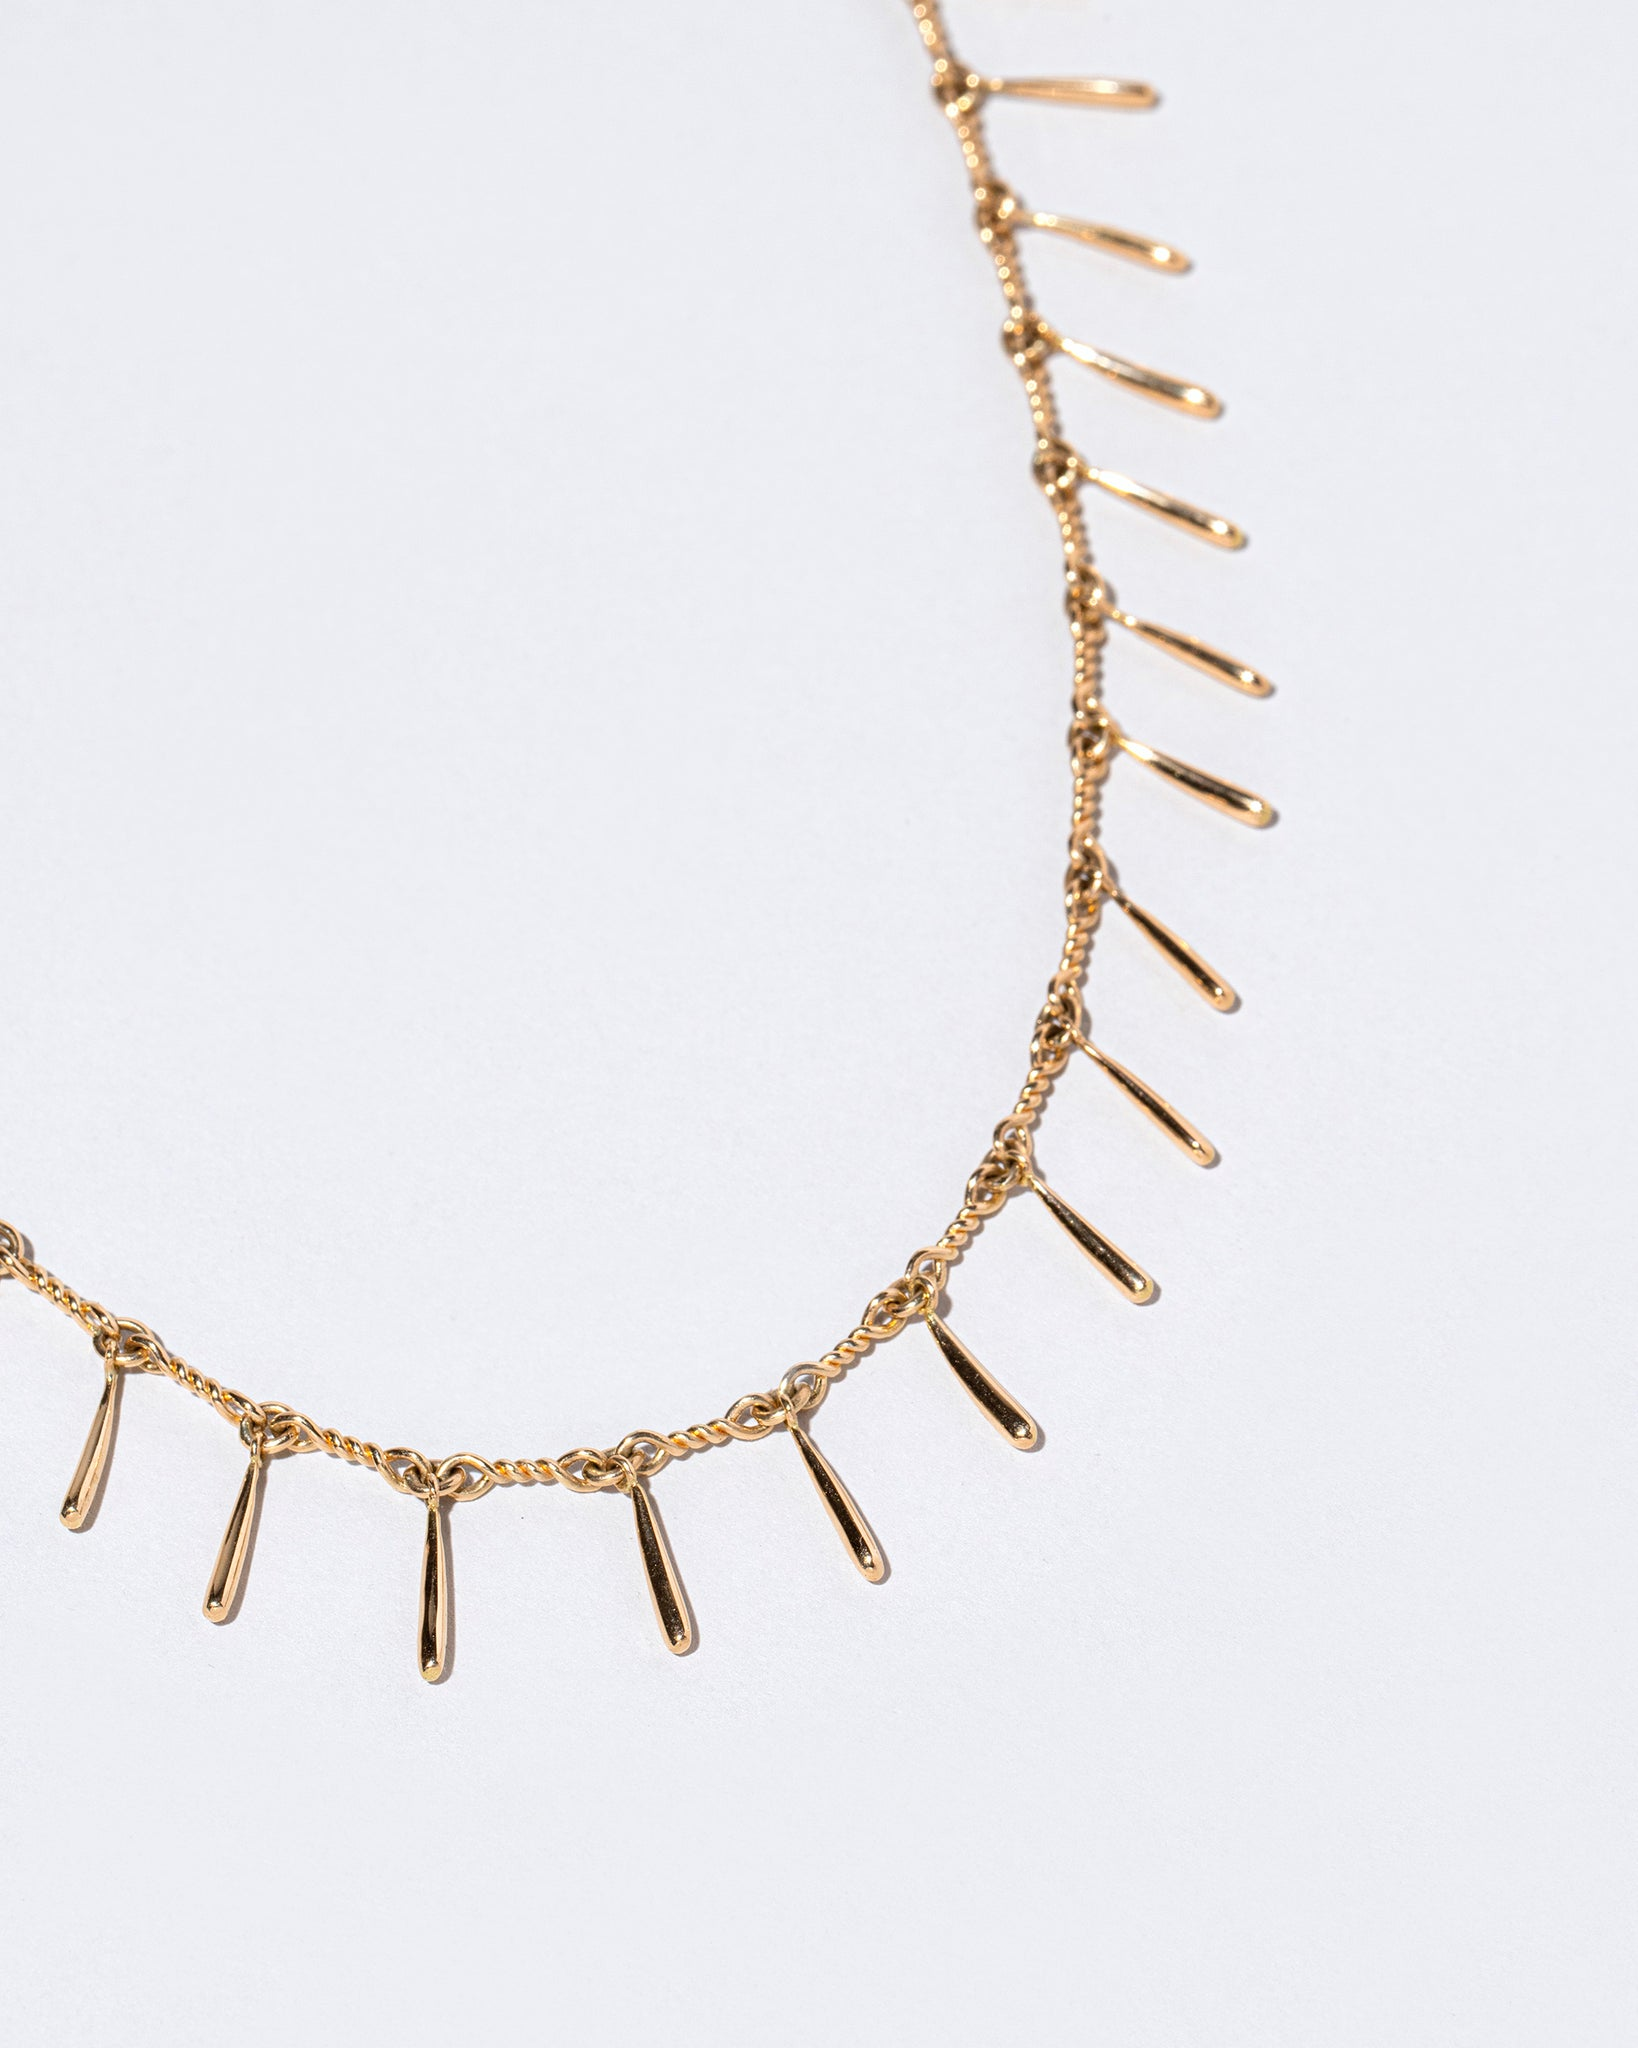 Swaying Necklace on flat surface close up